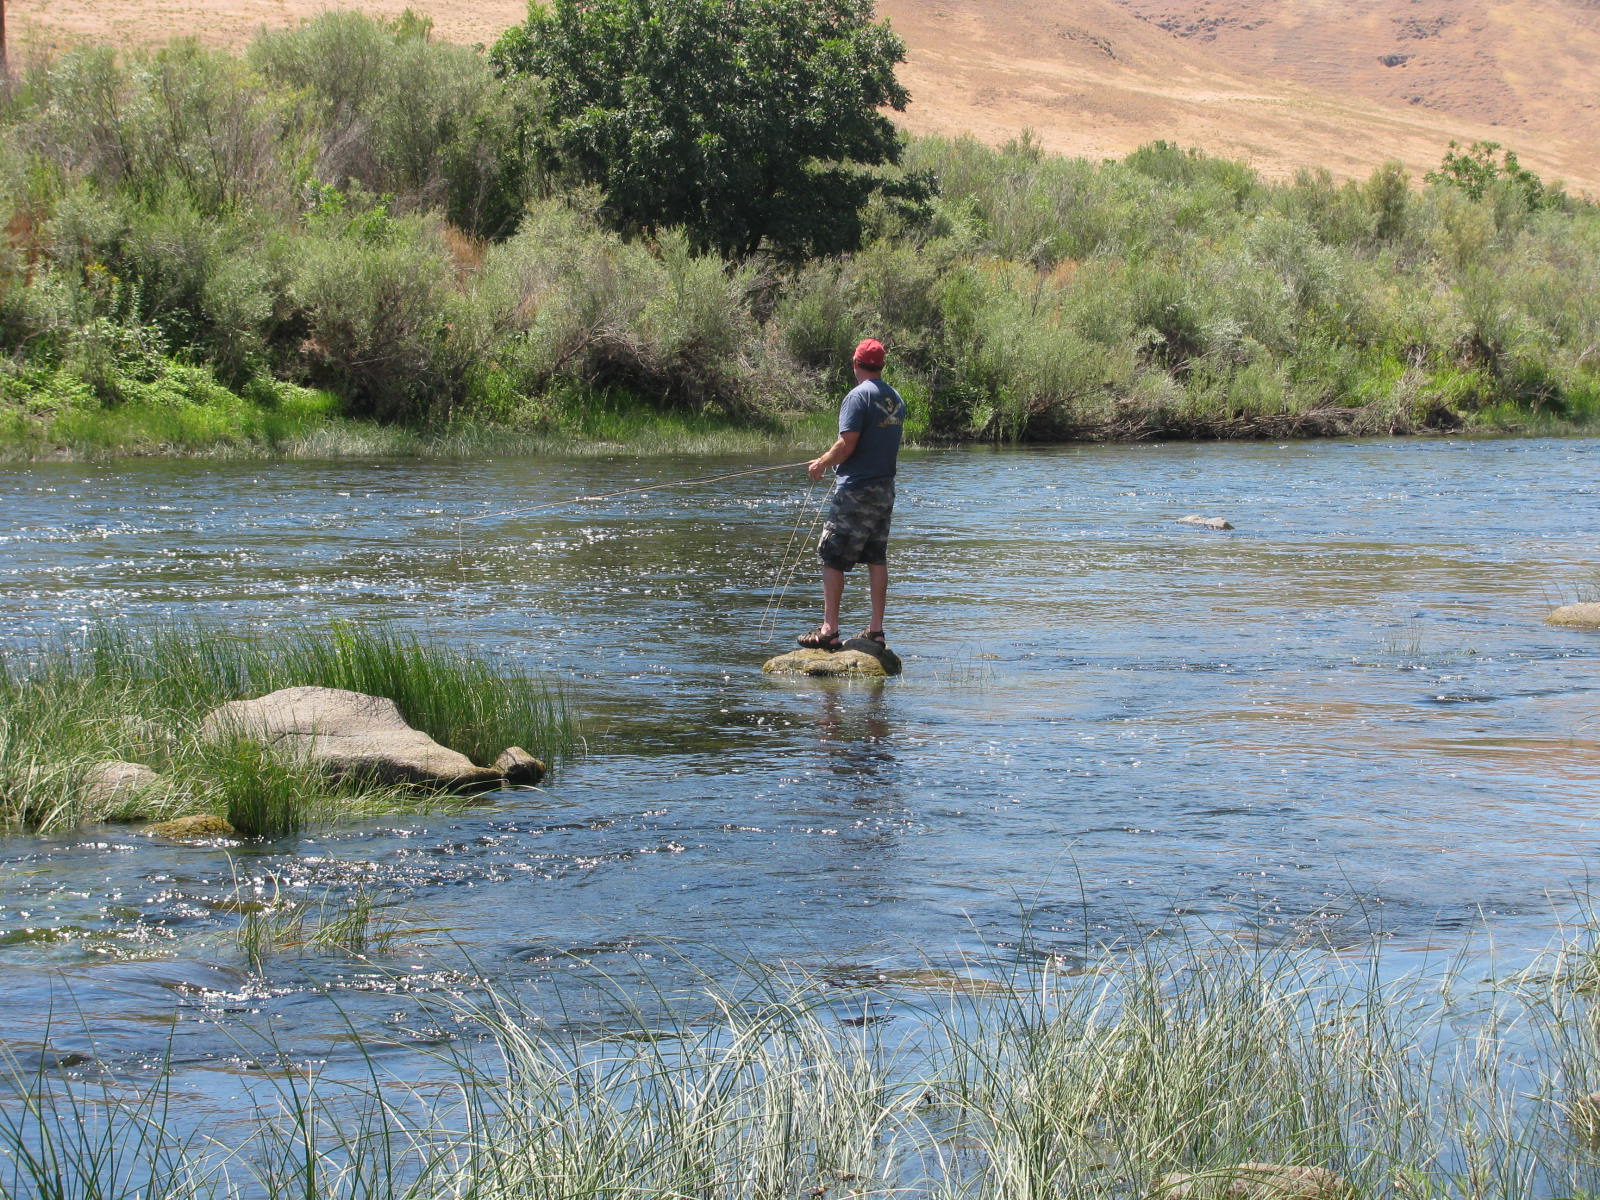 Man standing on rock in river fishing for bass